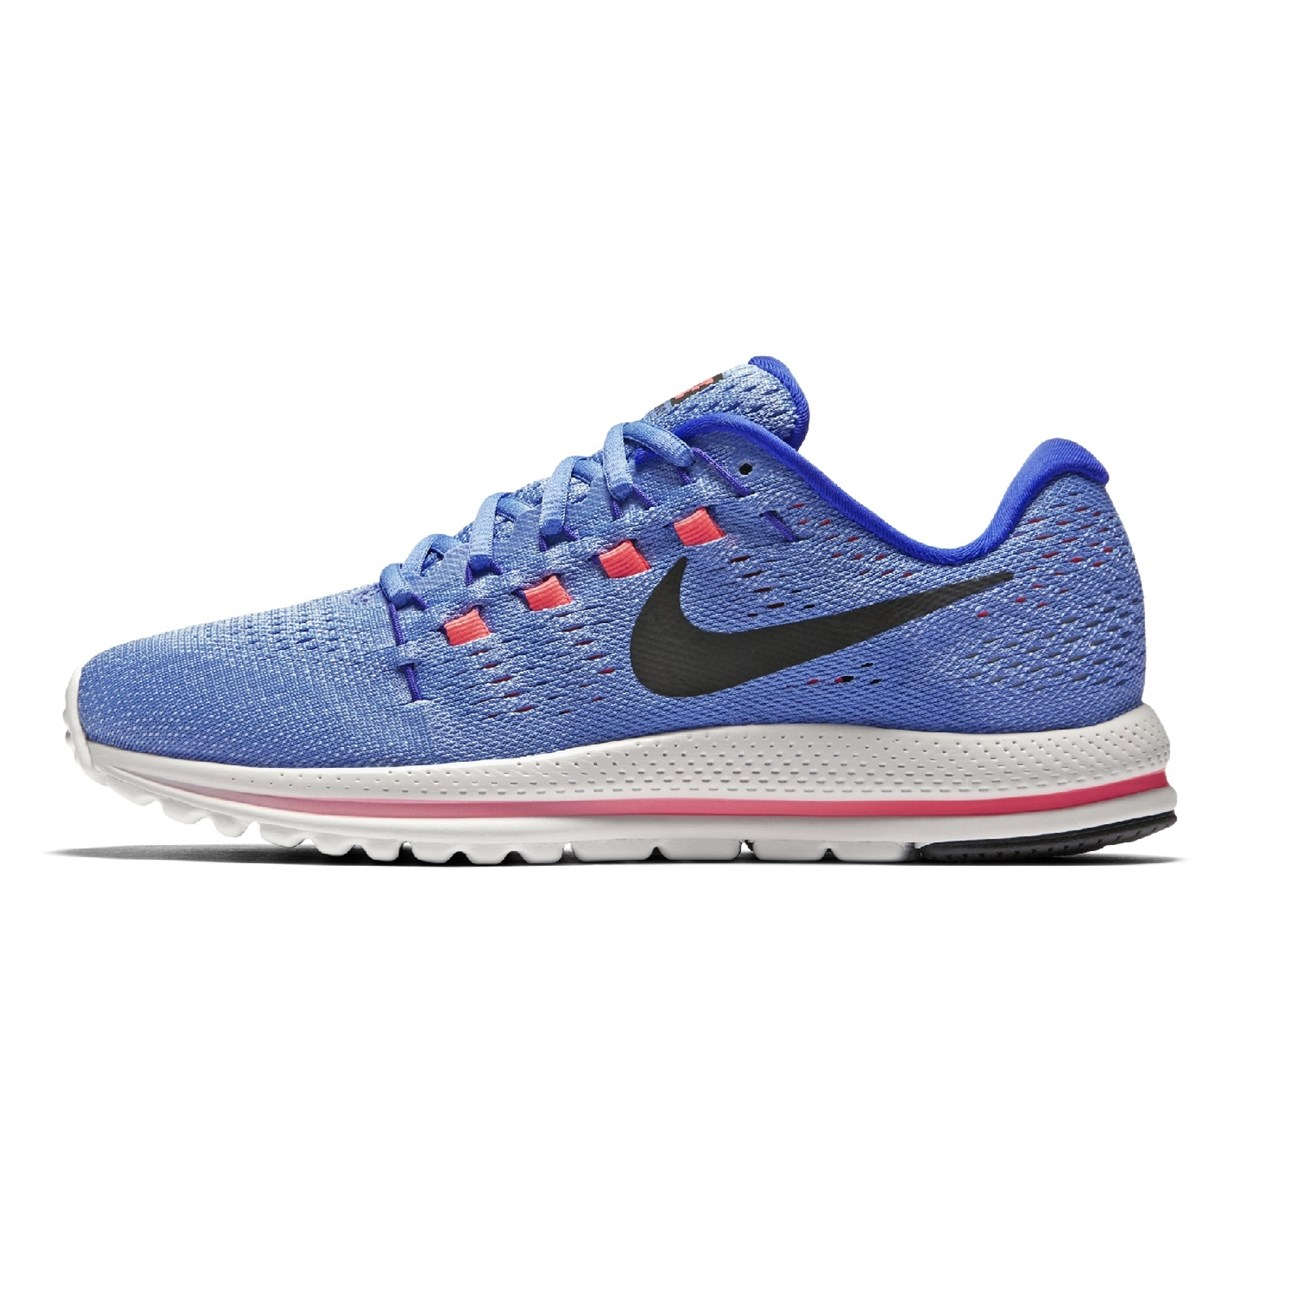 switzerland nike zoom vomero 9 intersport c759d c4b5f